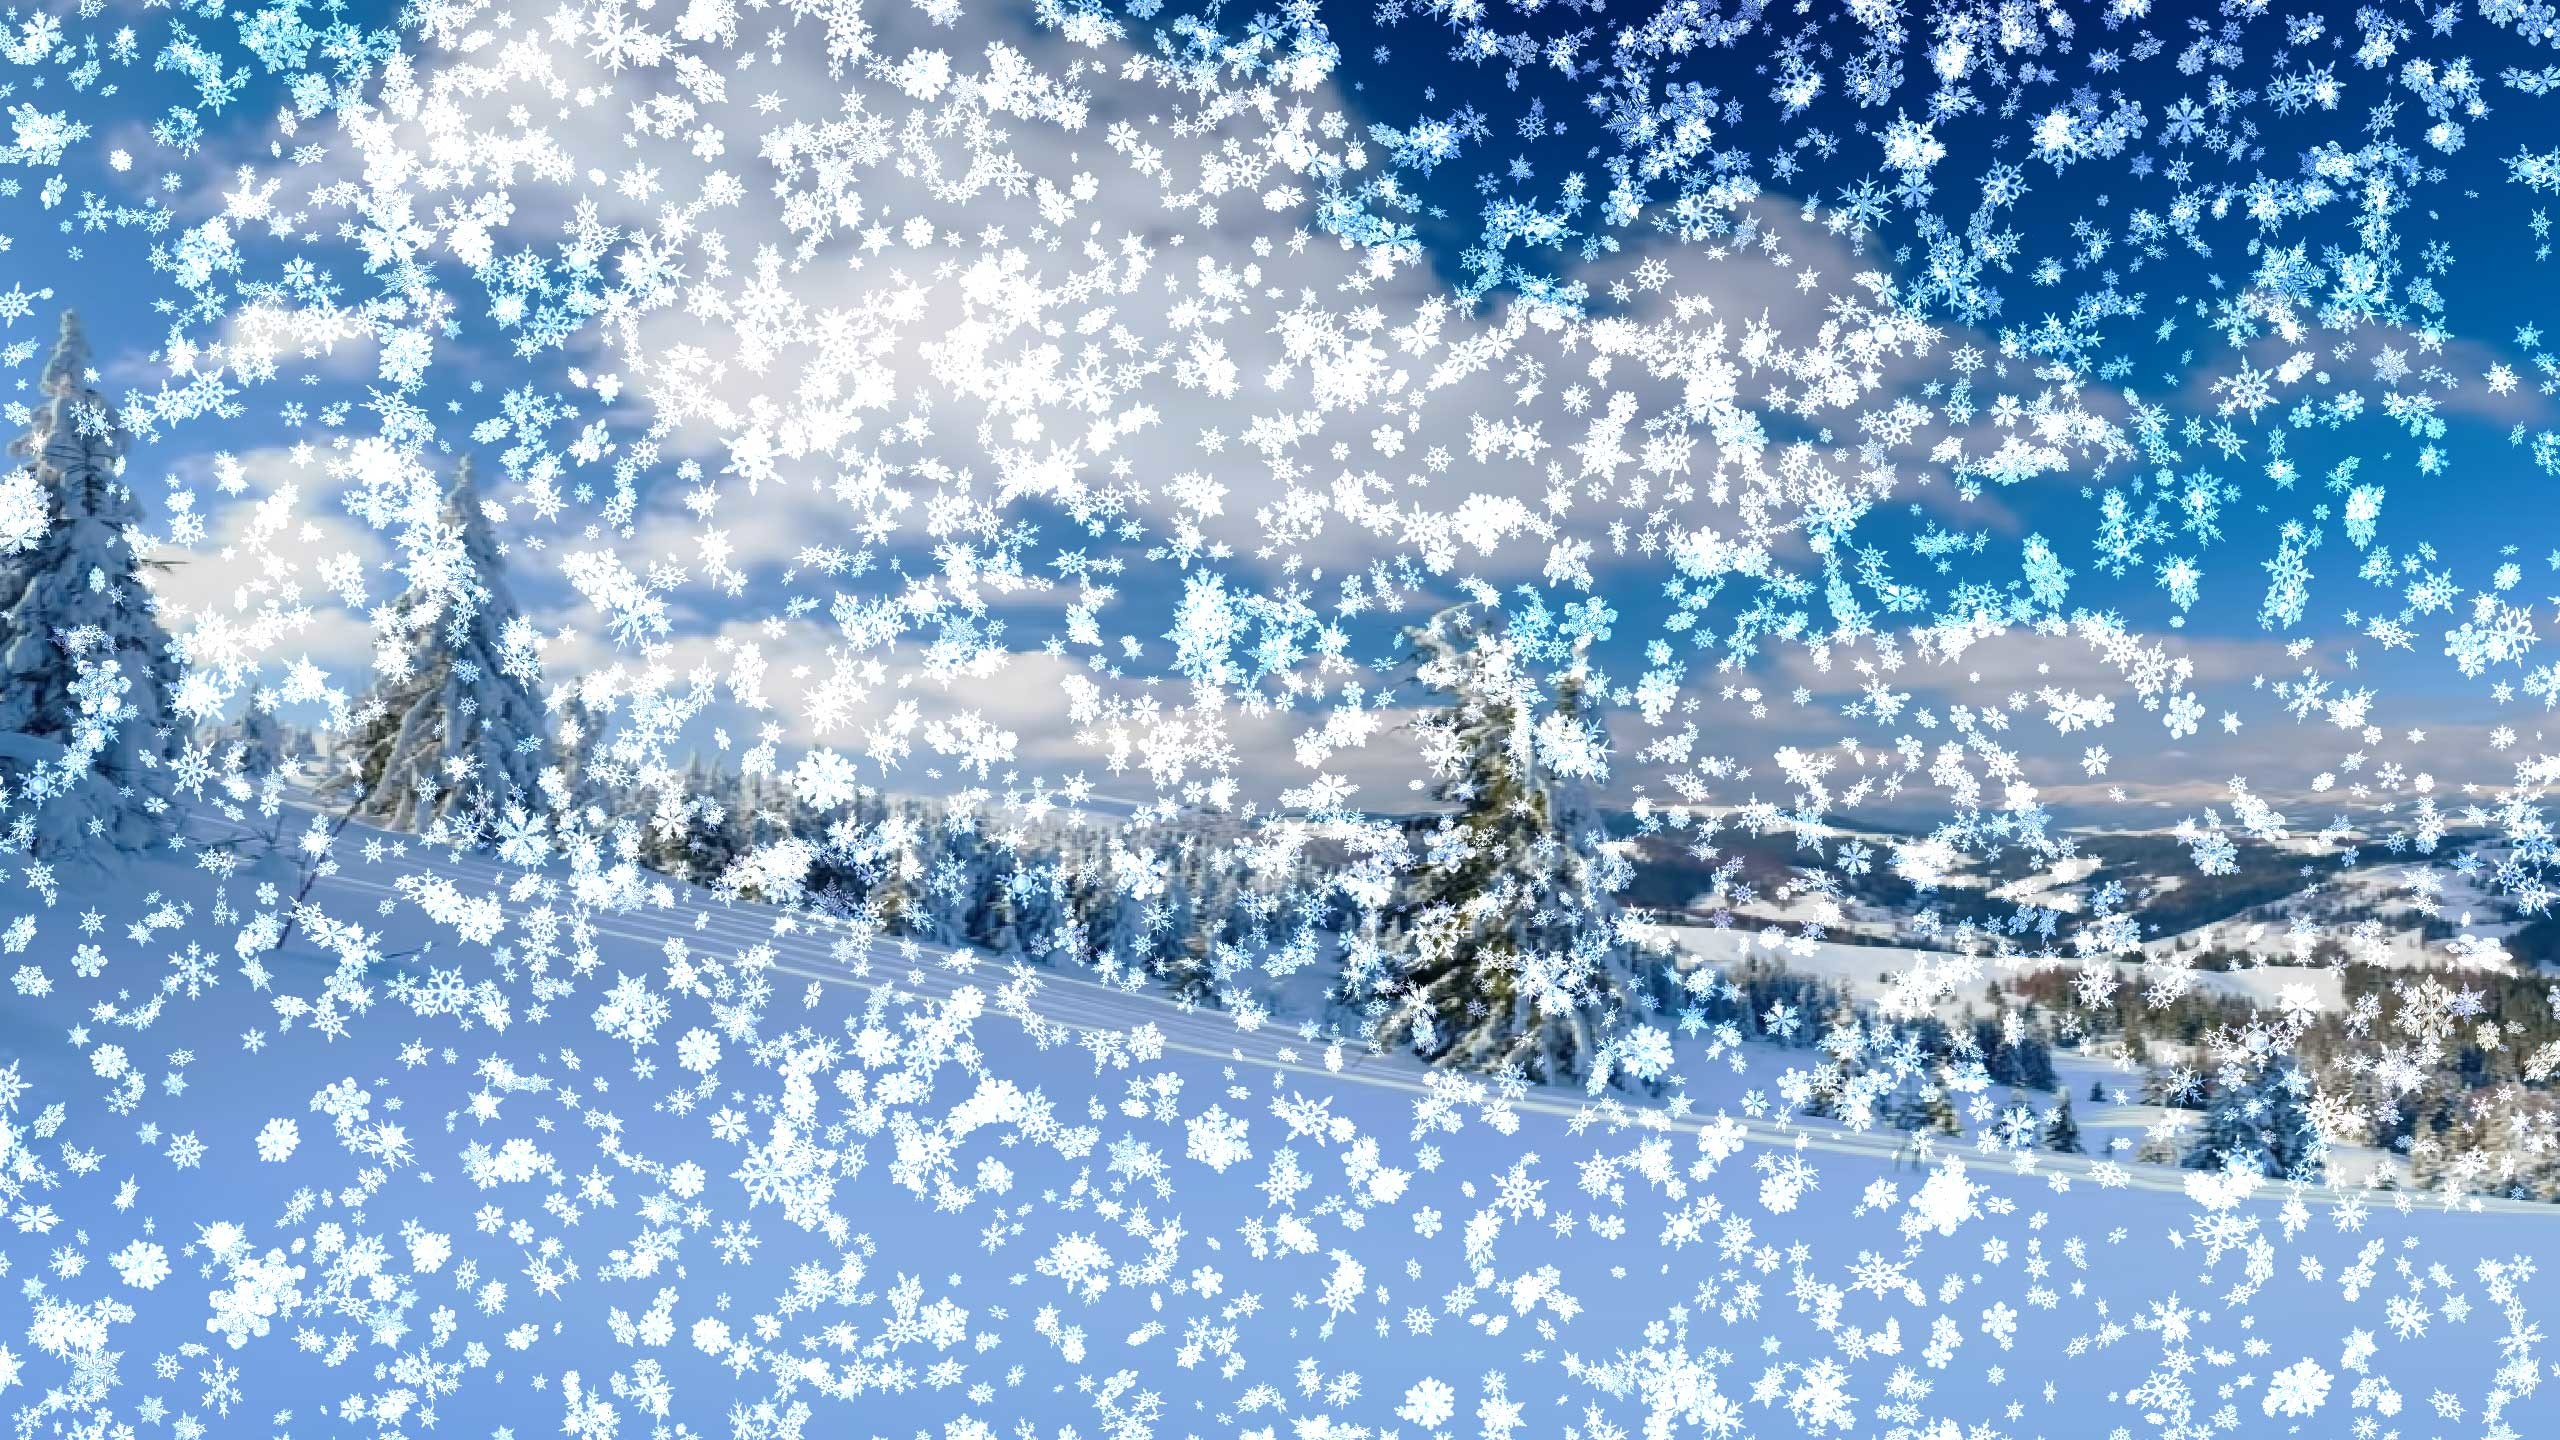 Free Falling Snow Wallpaper Download Animated Snow Scene Wallpaper 41 Images